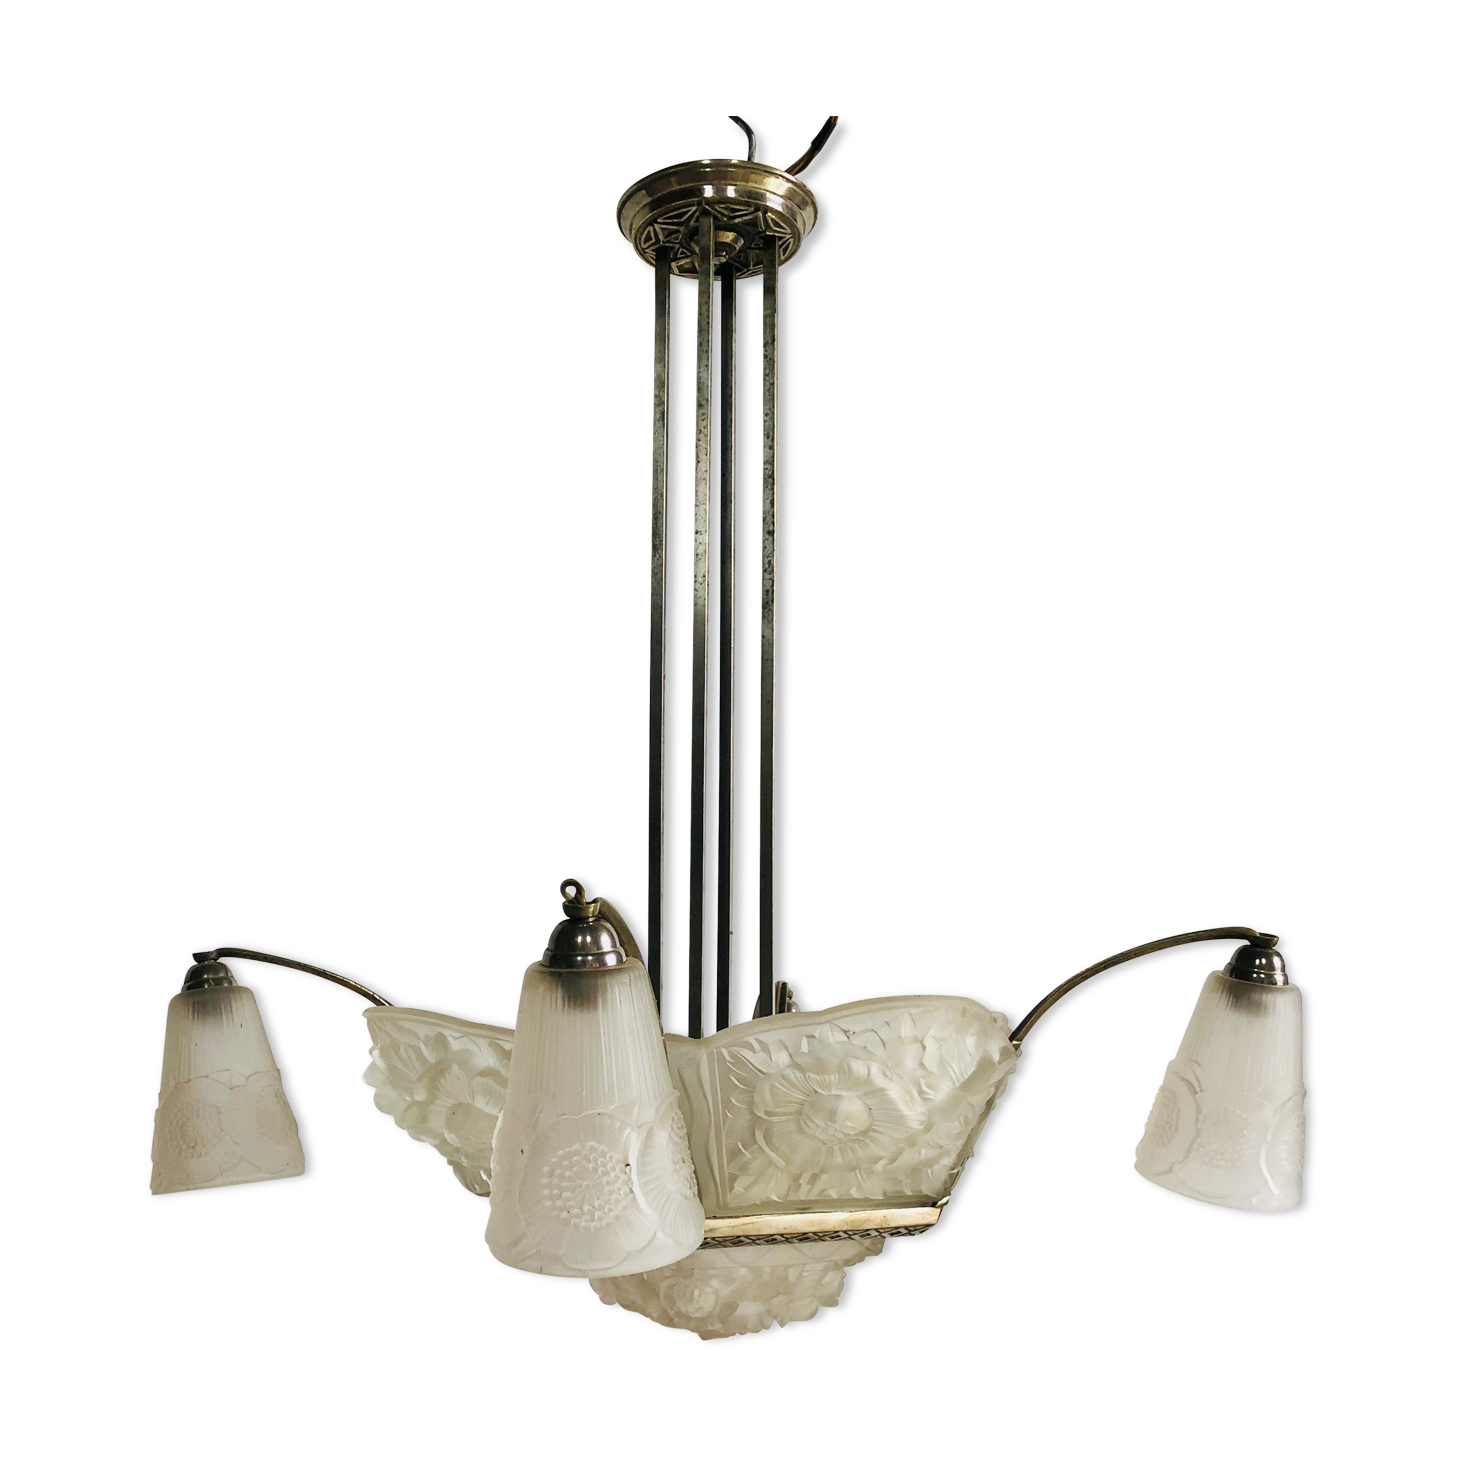 Chandelier art deco signed verdun france glass and crystal